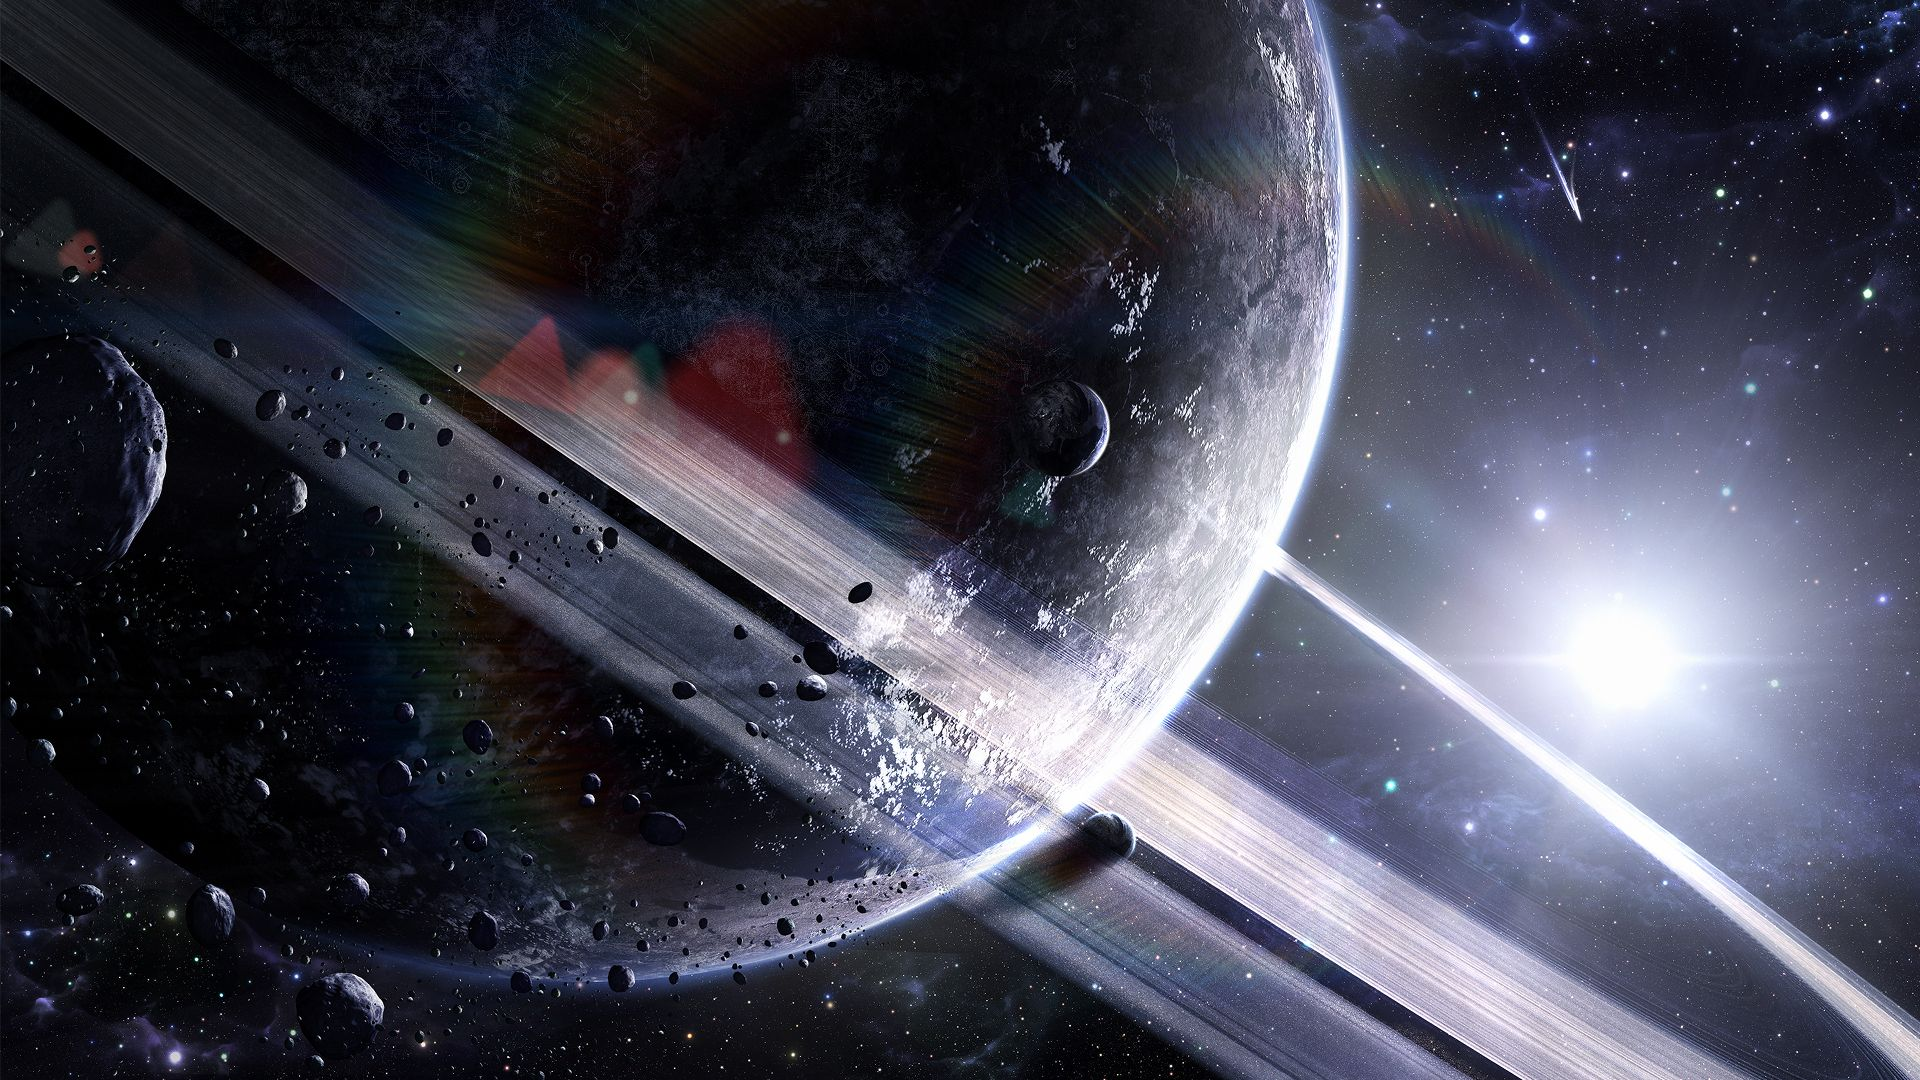 Hd wallpaper space - Space Hd Wallpapers 1080p Wallpaper Wallpapers Photos Pictures